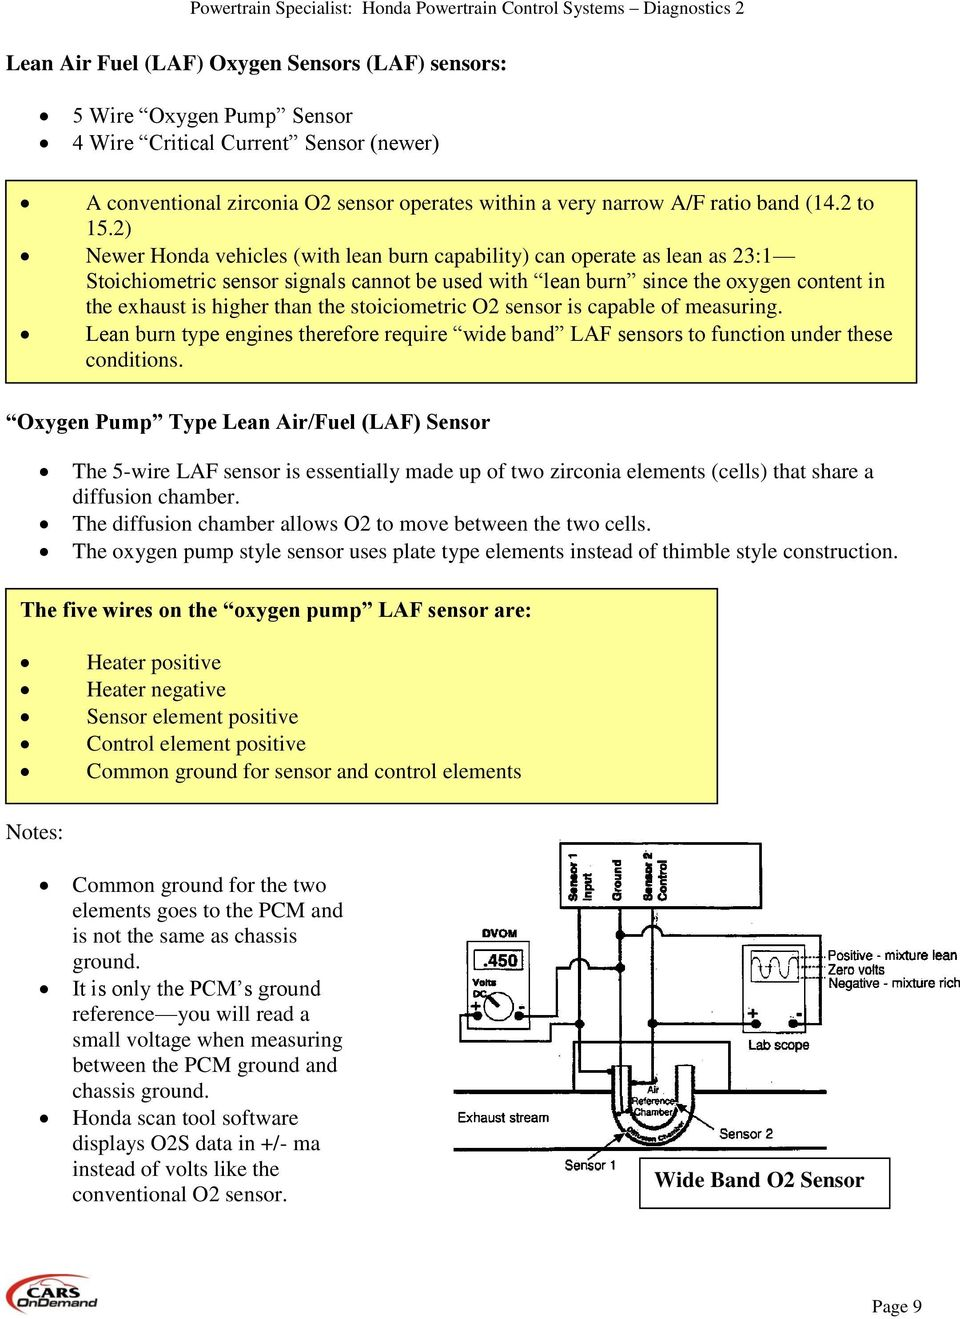 Honda Powertrain Control Systems Diagnostics Pdf 2003 Odyssey Tcc Wiring Diagram 2 Newer Vehicles With Lean Burn Capability Can Operate As